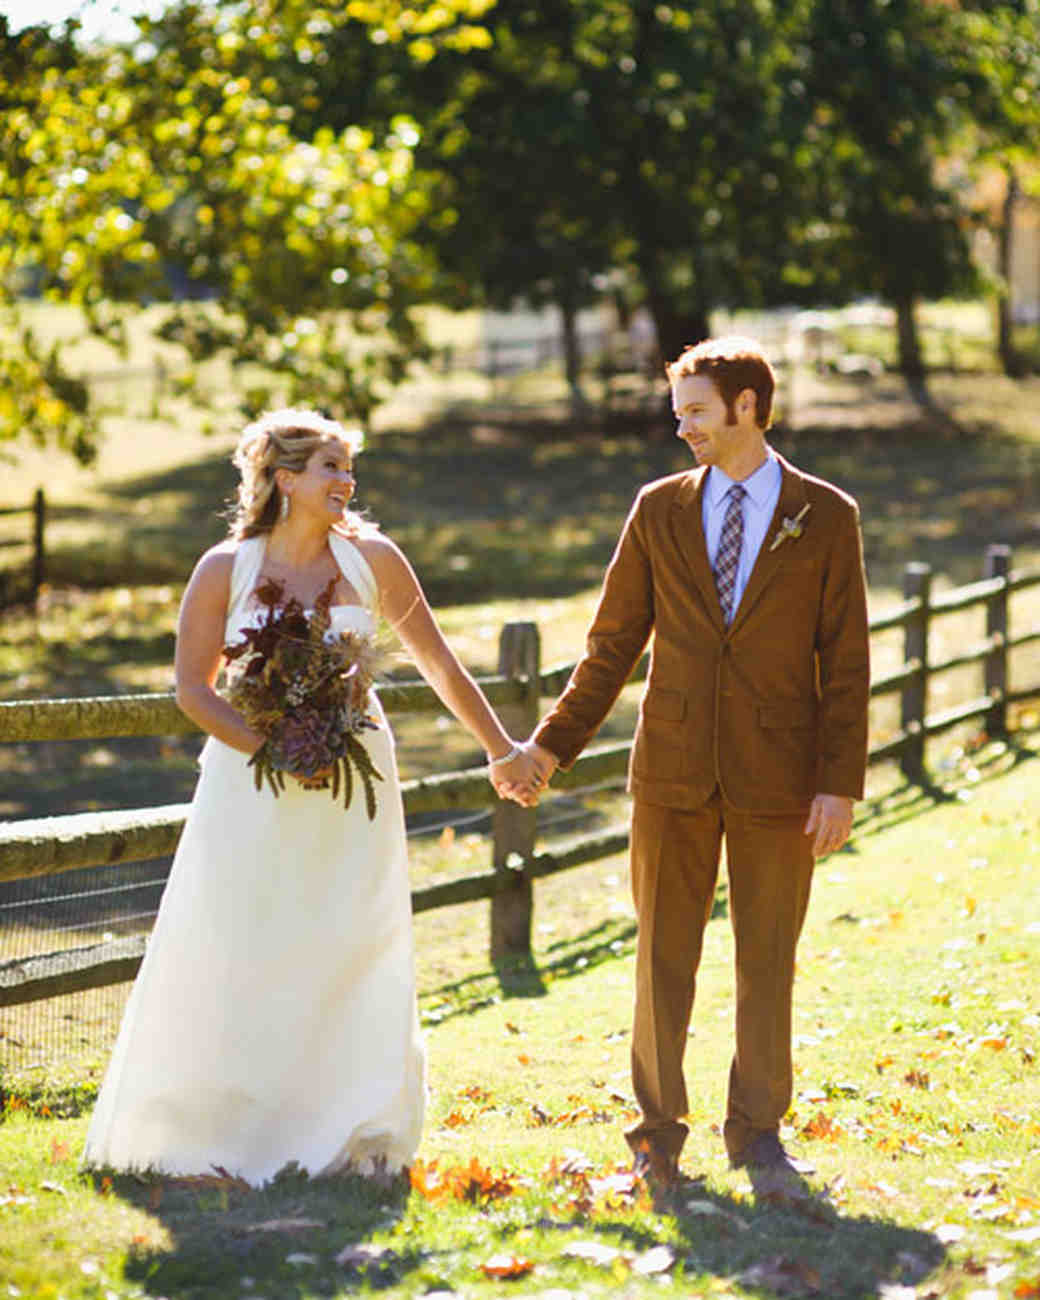 A Rustic Autumn Wedding in a Barn in Pennsylvania | Martha Stewart ...